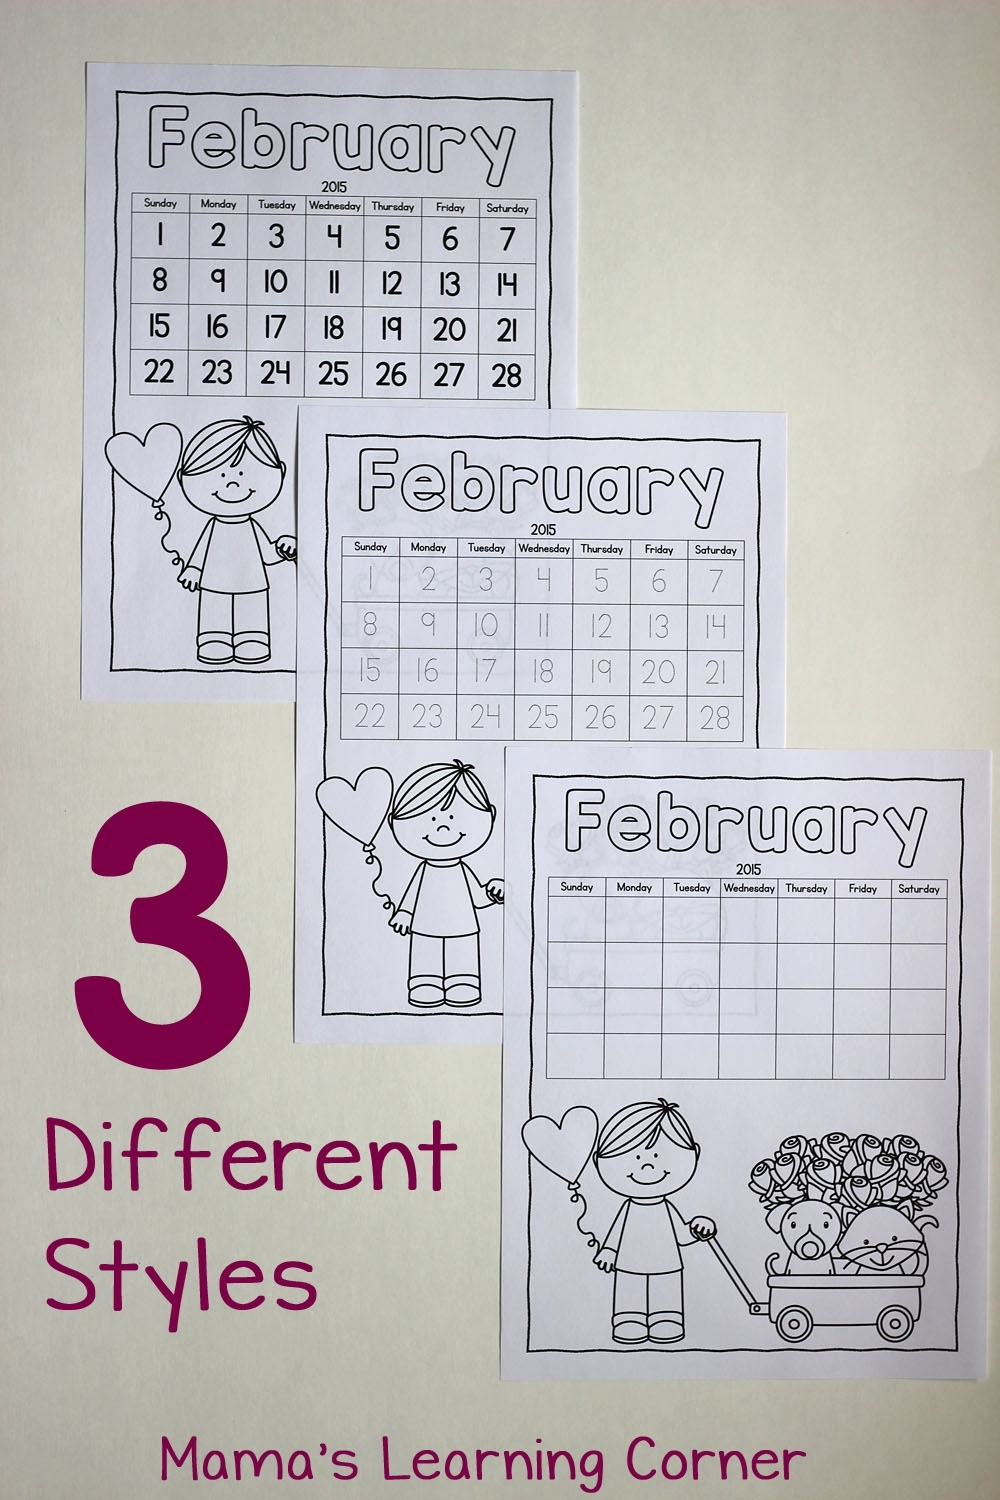 Color Your Own Calendar! - Mamas Learning Corner